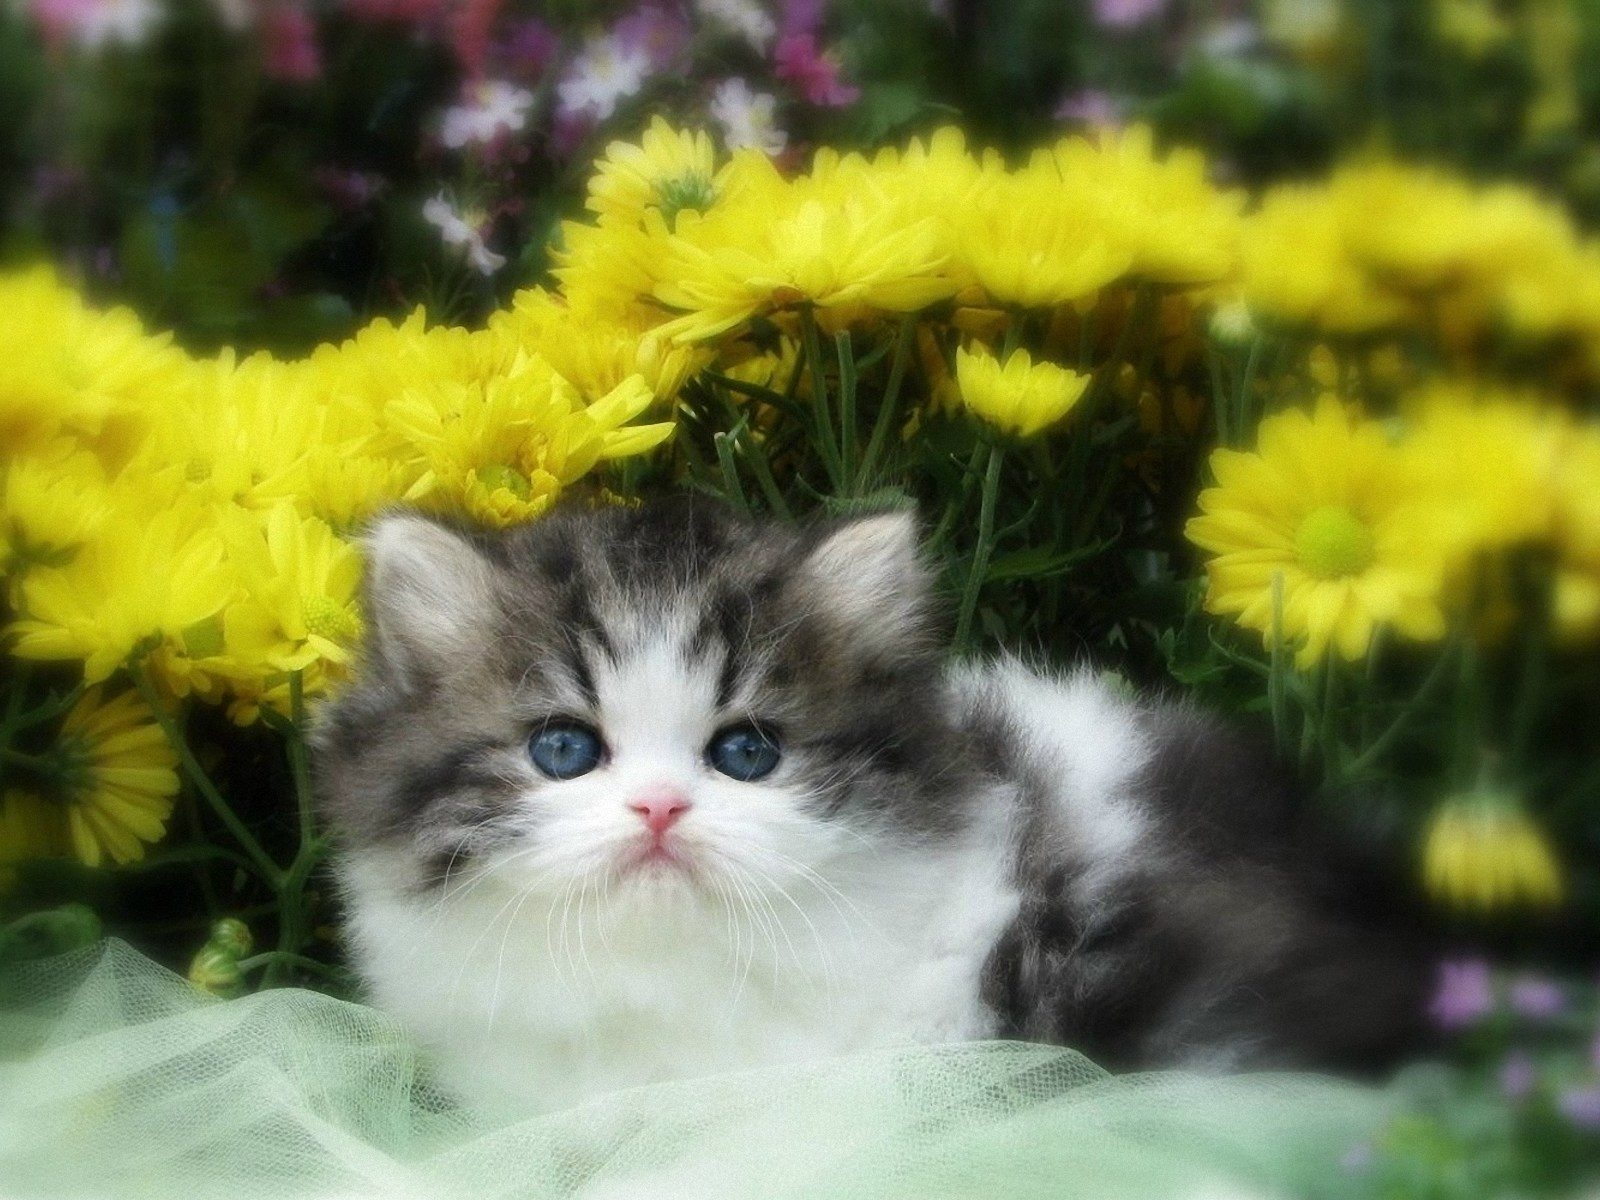 click to free download the wallpaper--Free Pics of Kitten, the Little Cutie is in Innocent Eyesight, She is Like a Fur Ball 1600X1200 free wallpaper download